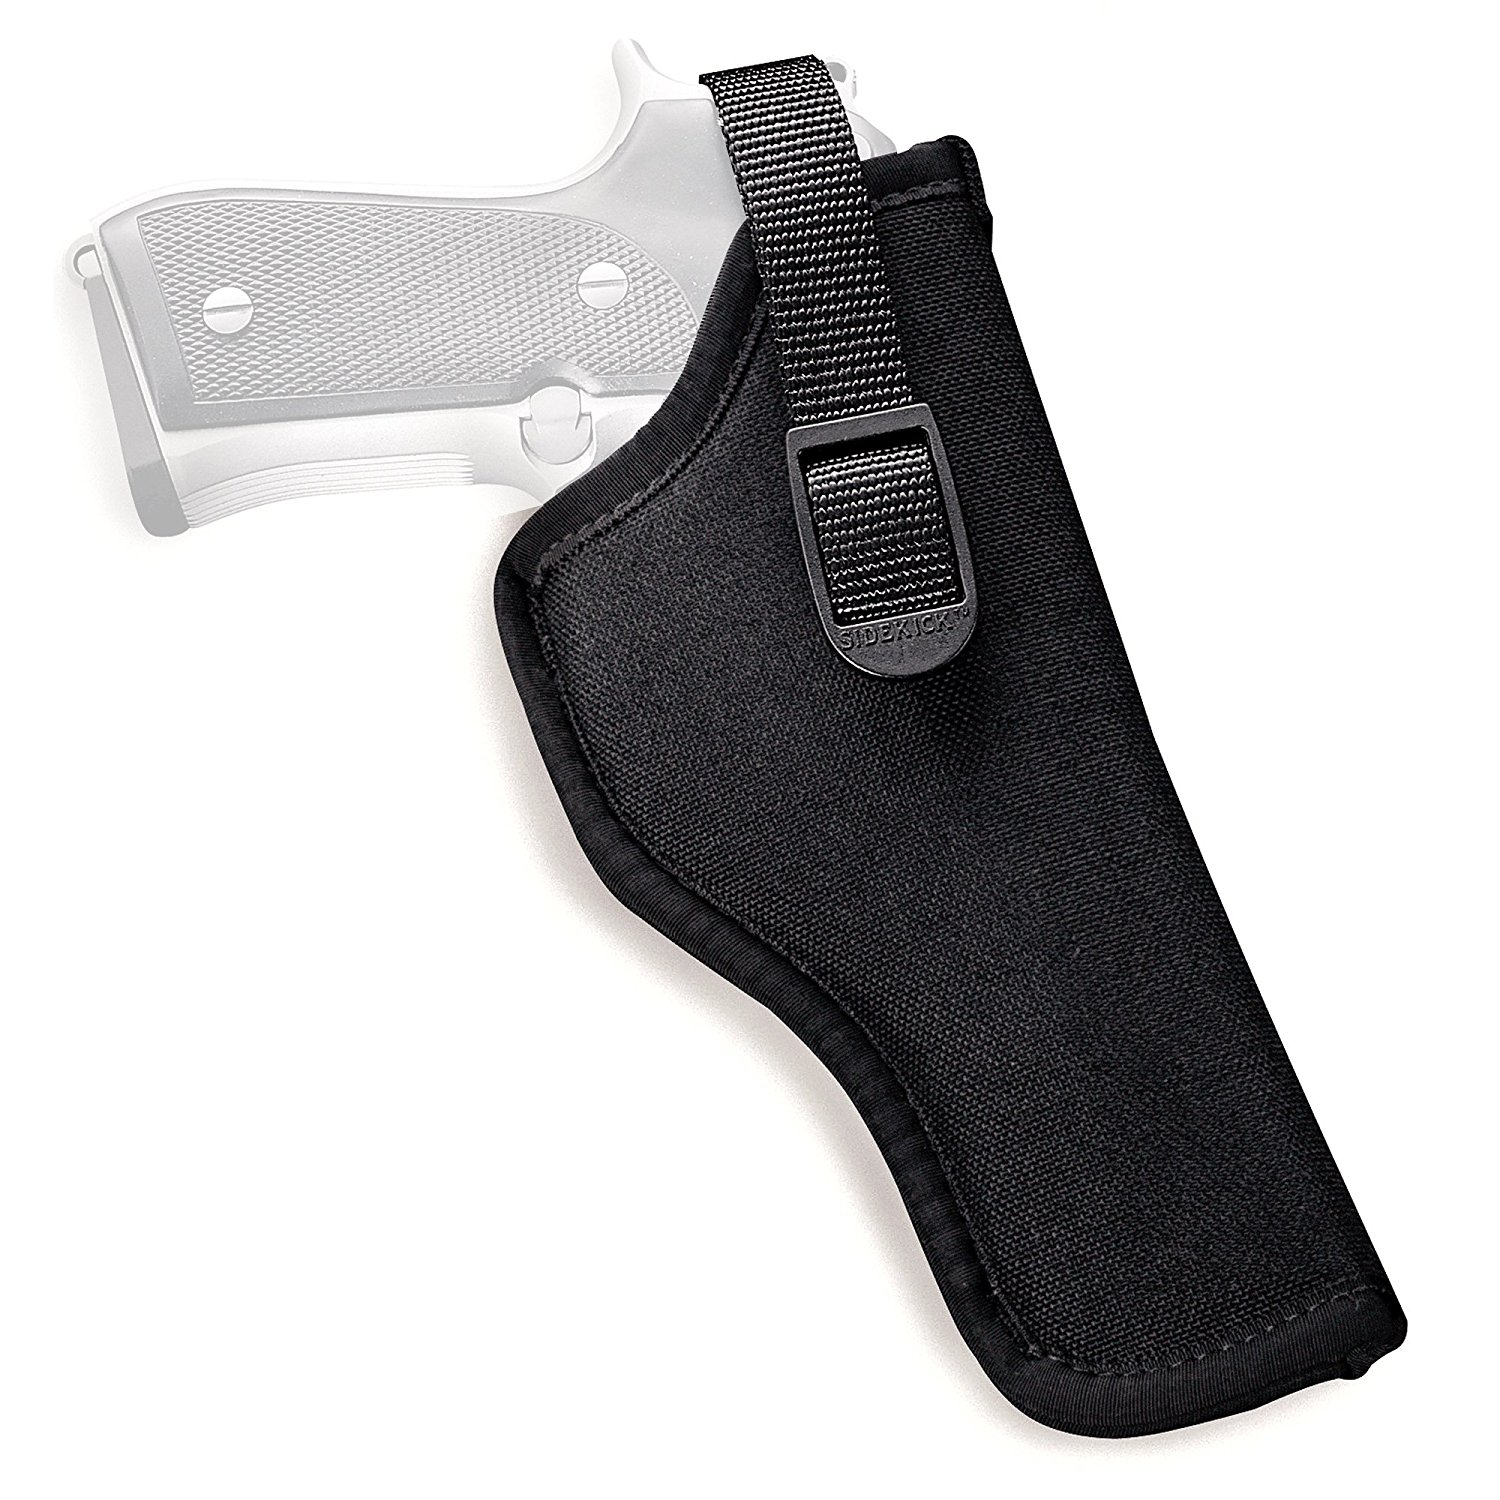 image of Uncle Mike's Kodra Nylon Sidekick Hip Holster